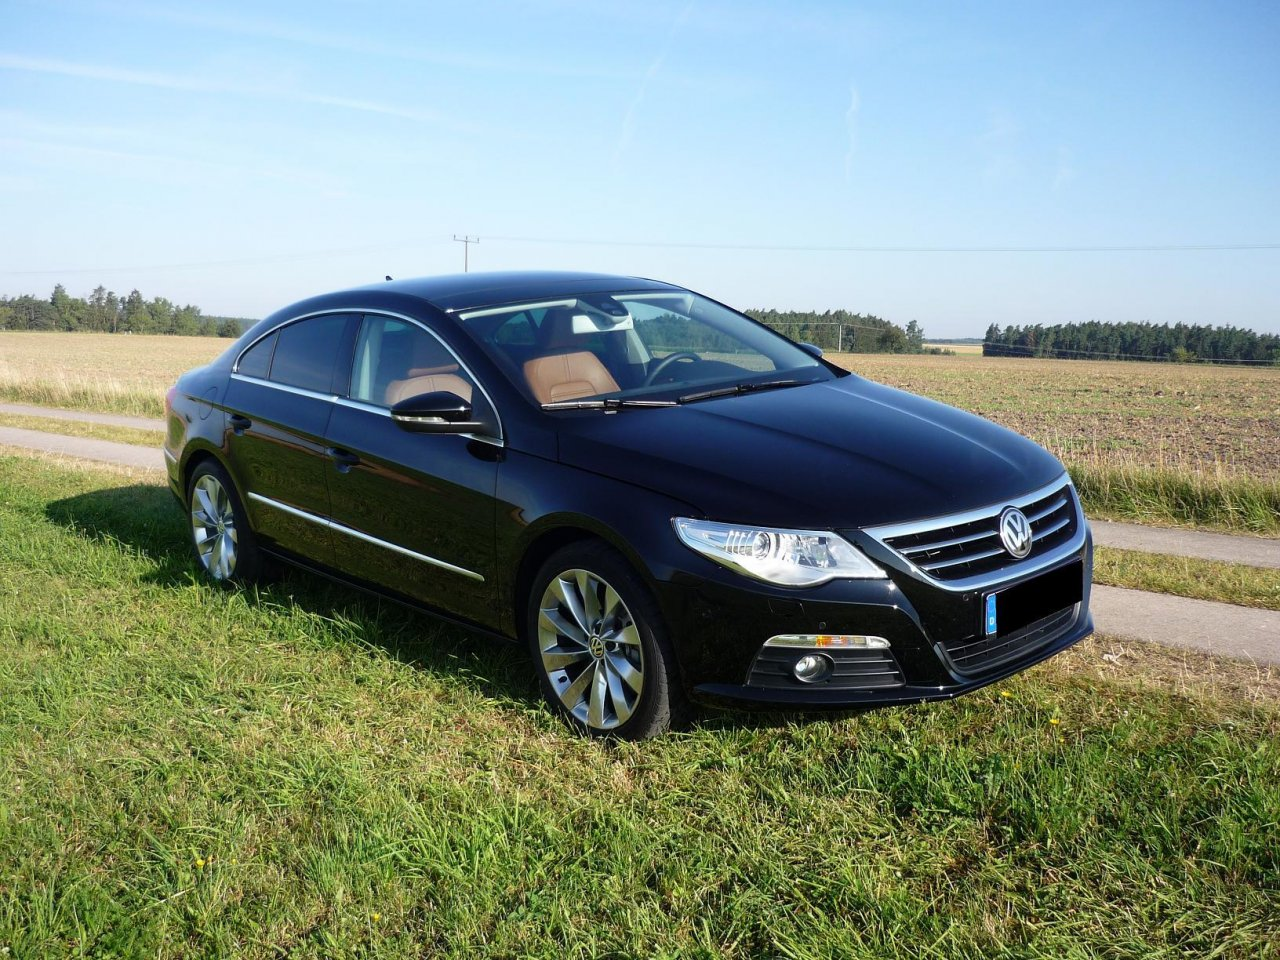 vw passat cc v6 4motion laptimes specs performance data. Black Bedroom Furniture Sets. Home Design Ideas